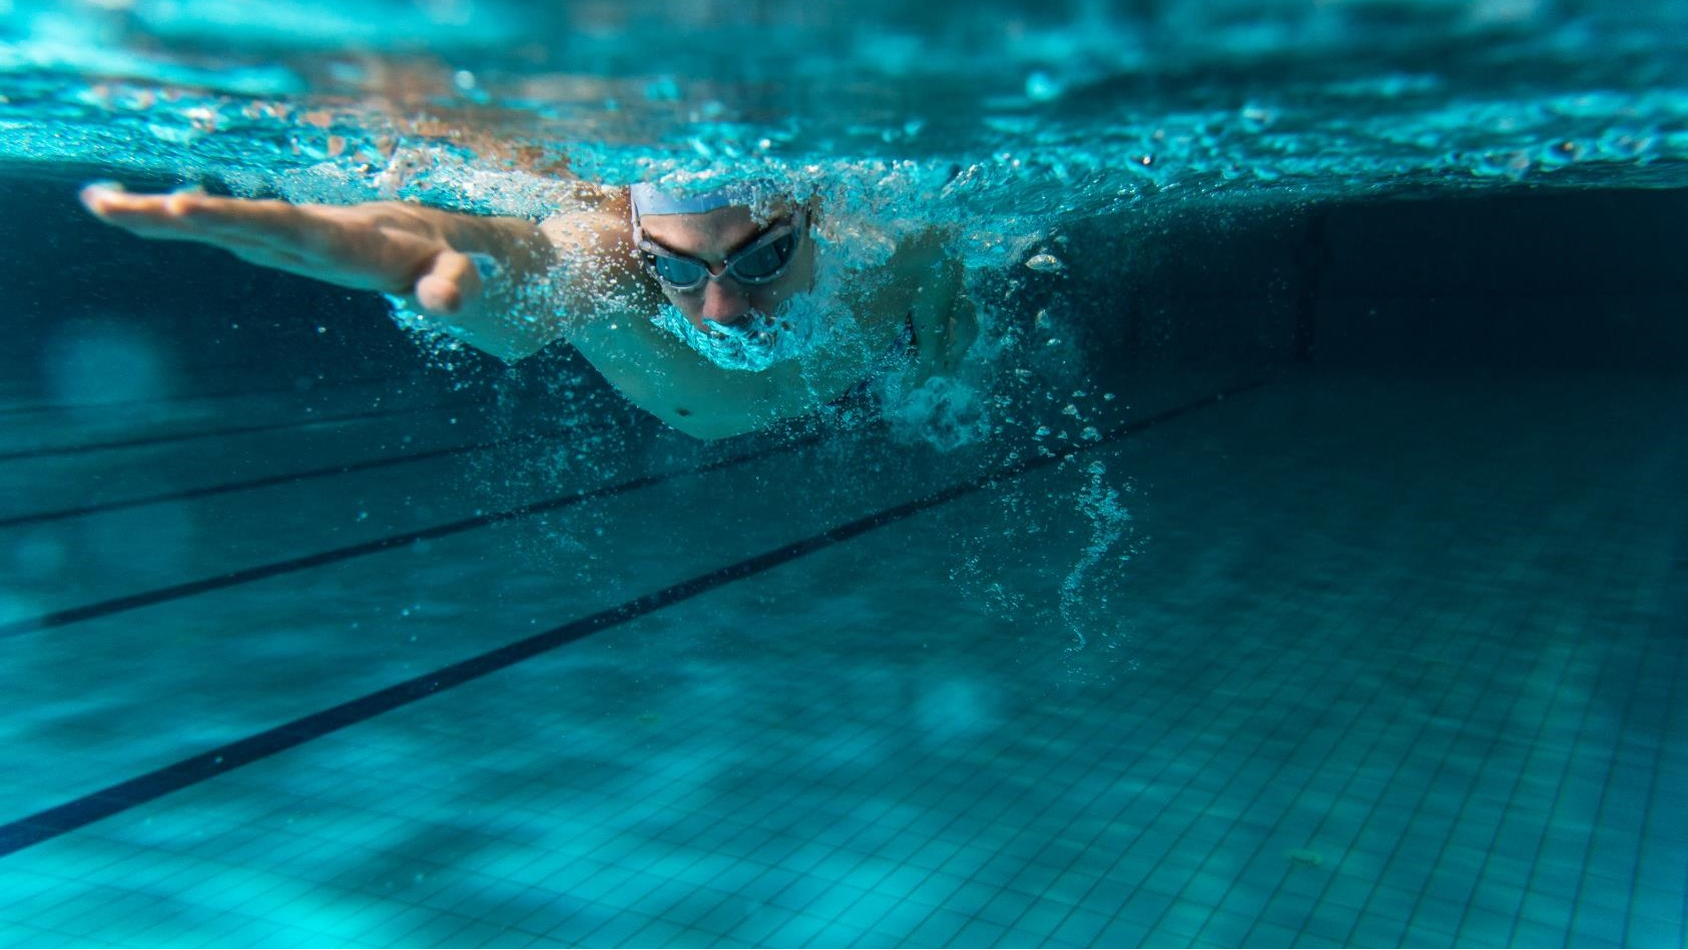 Piscine Bellevue Toulouse | Urban Sports Club concernant Piscine Bellevue Toulouse